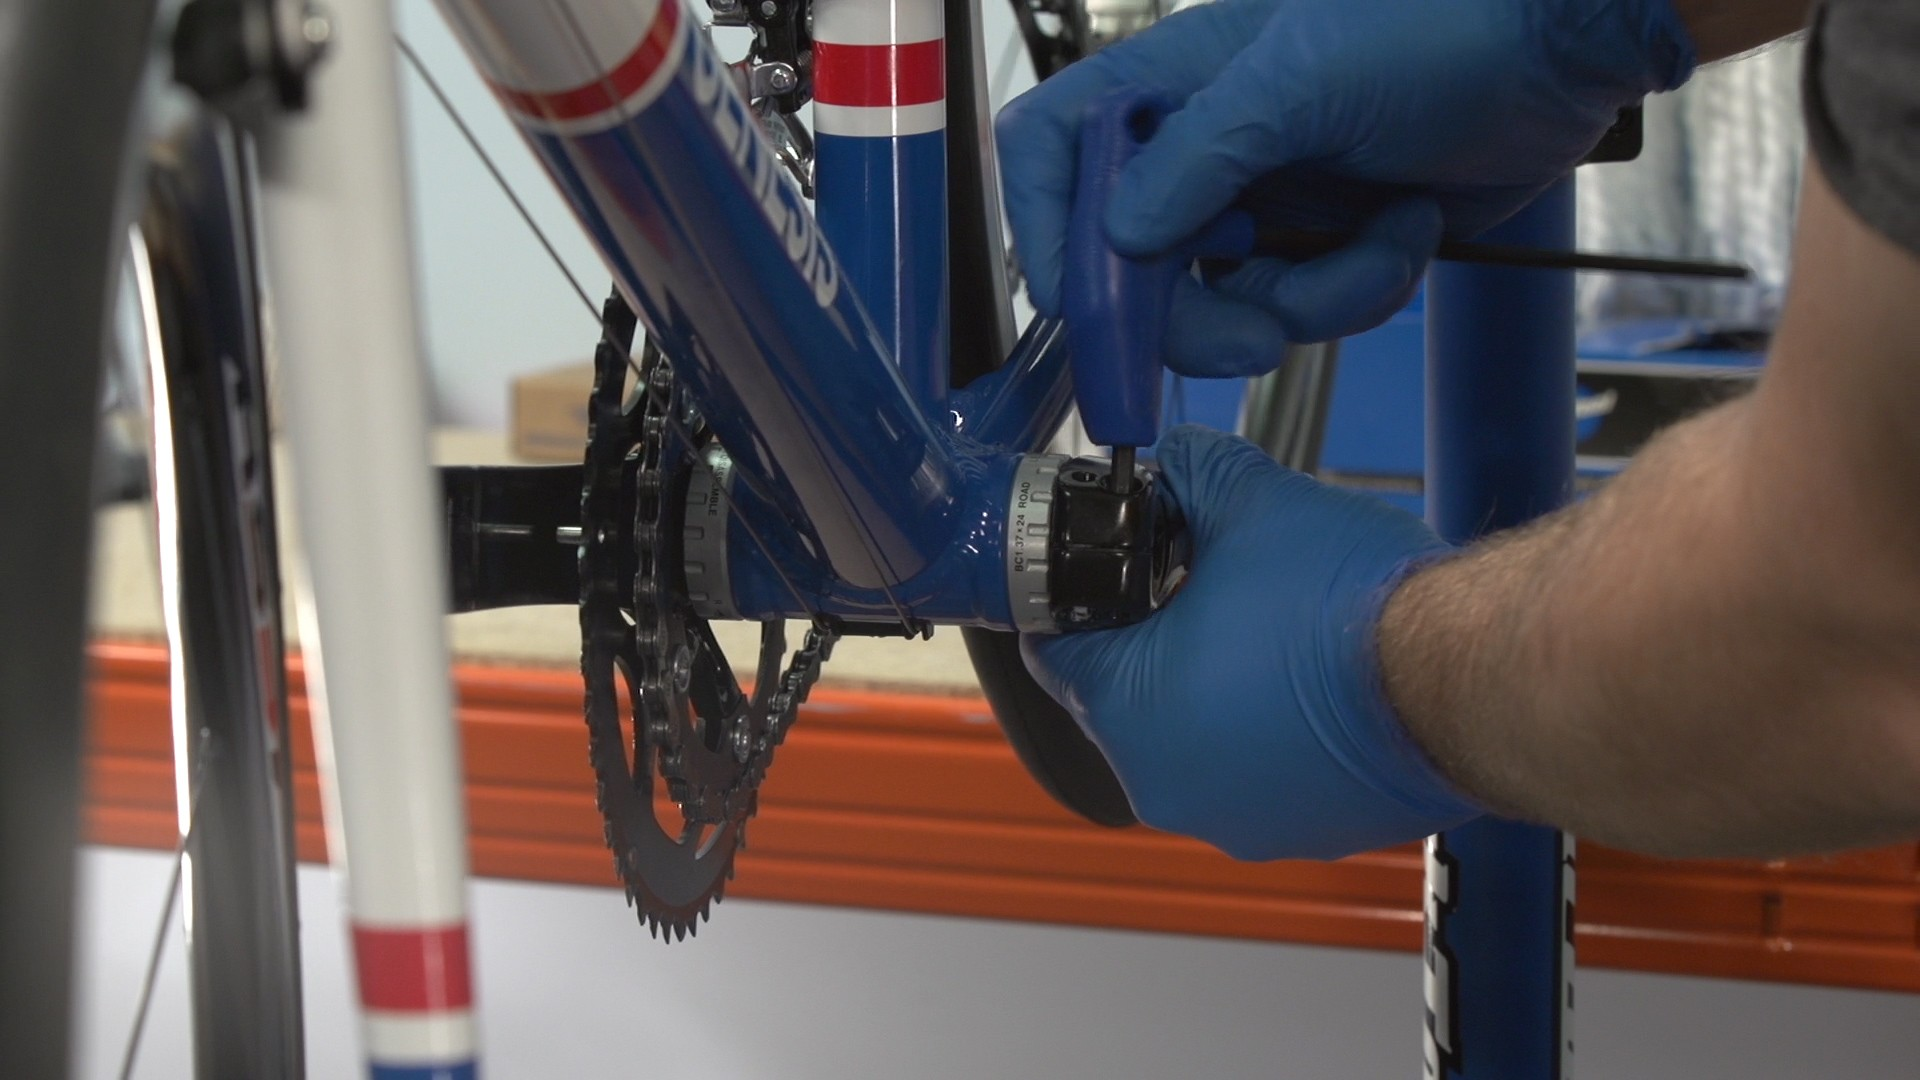 You'll need to remove the crankset in order to get at the chainrings